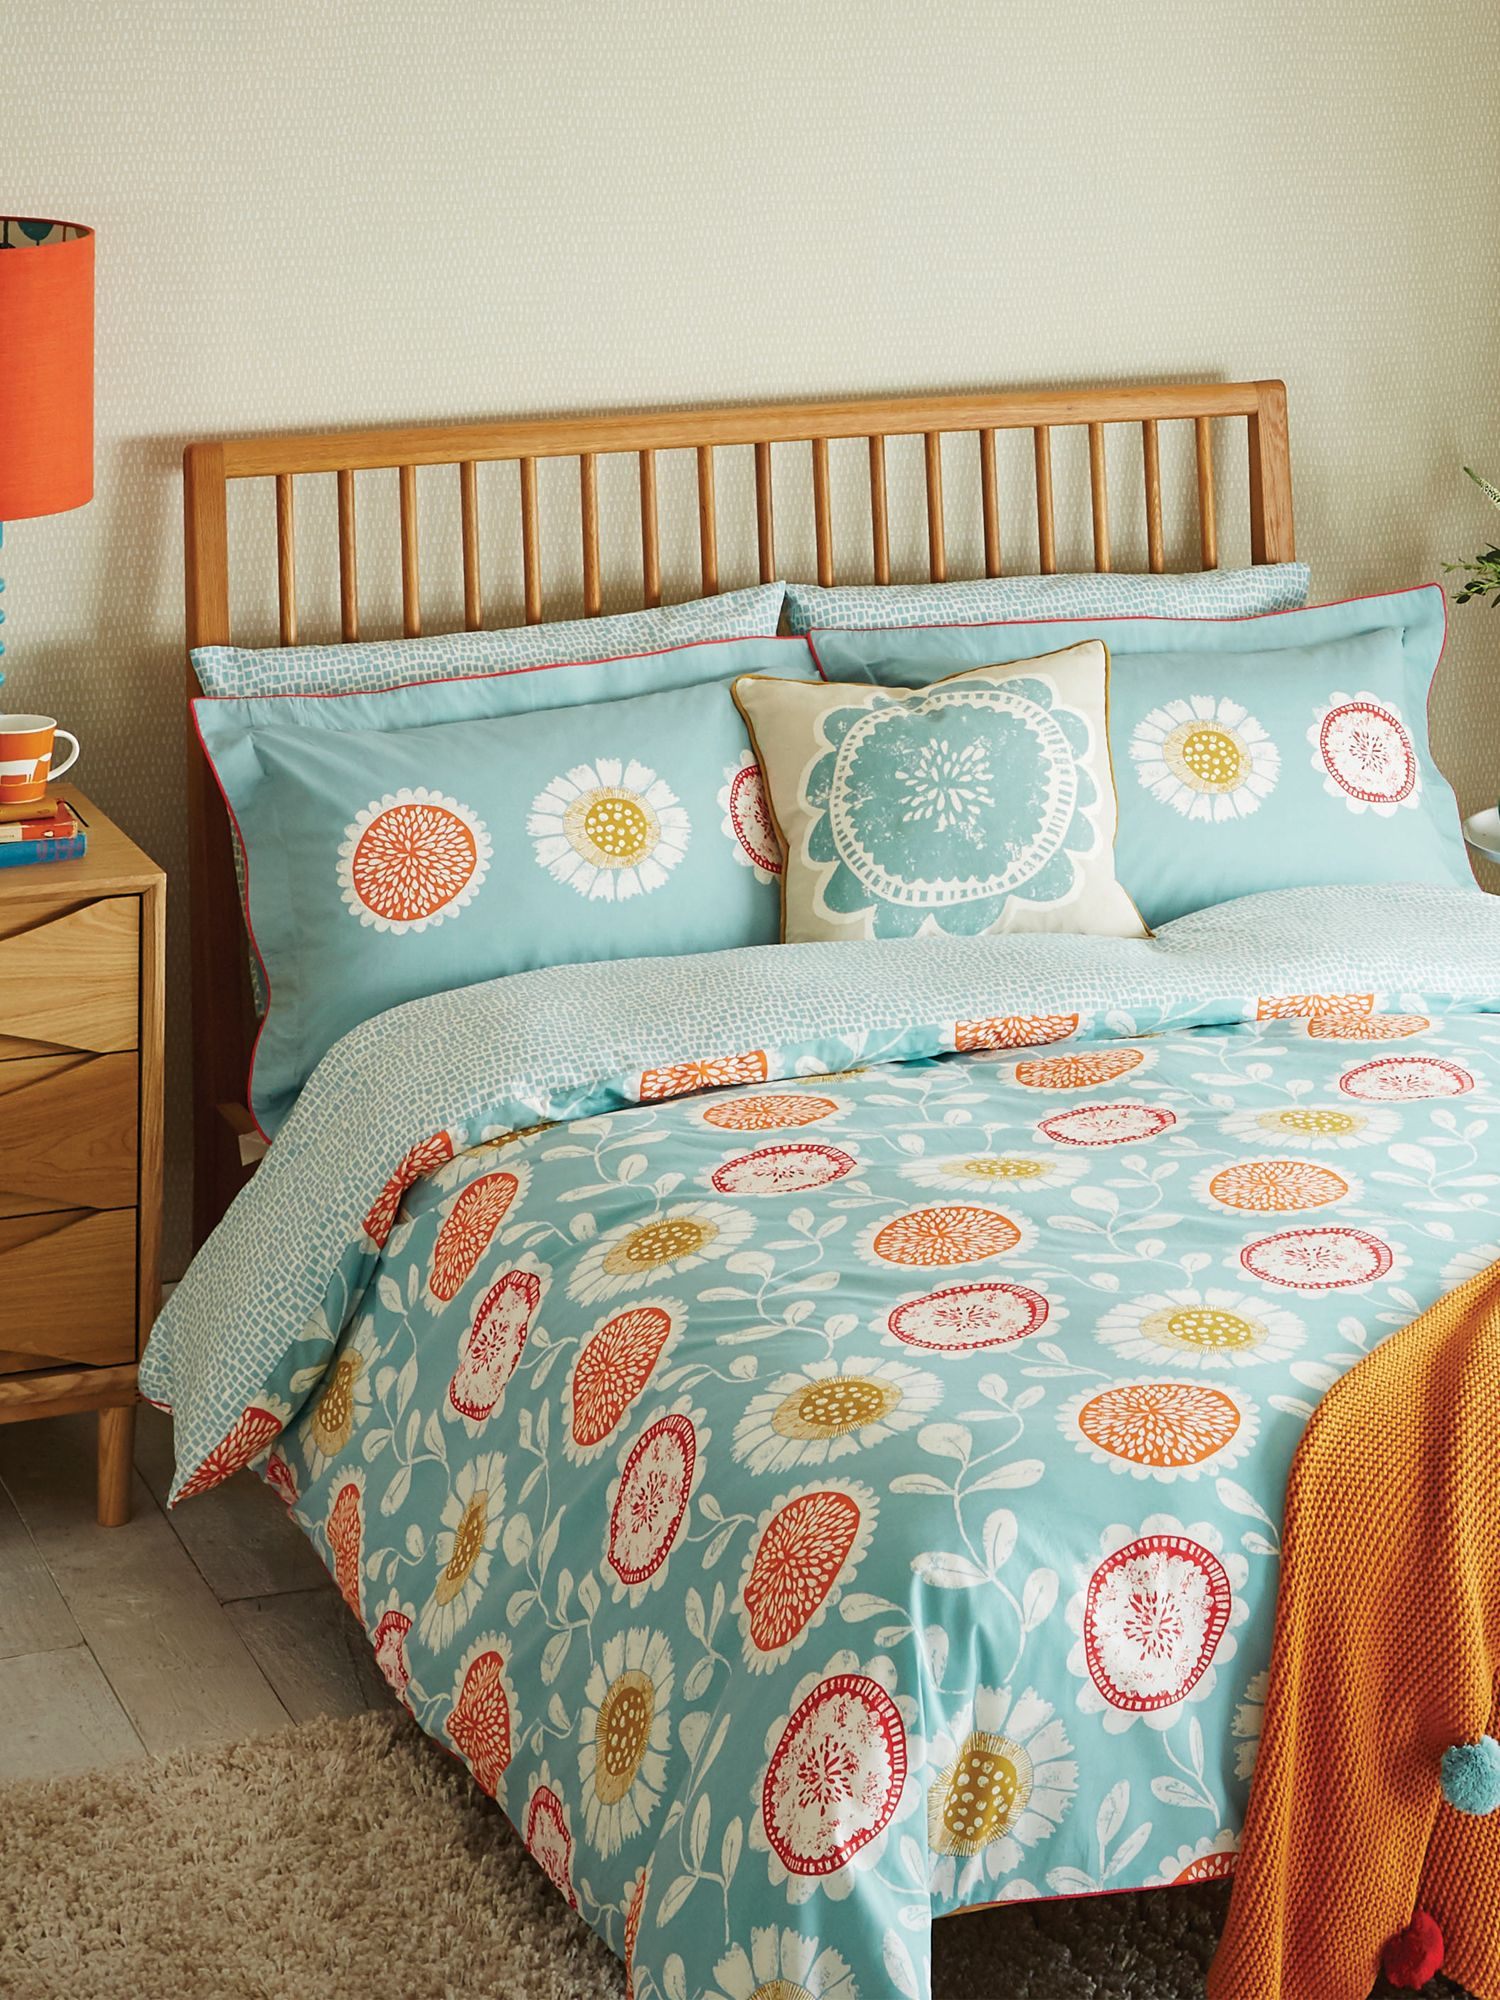 Image of Scion Anneke housewife pillowcase pair